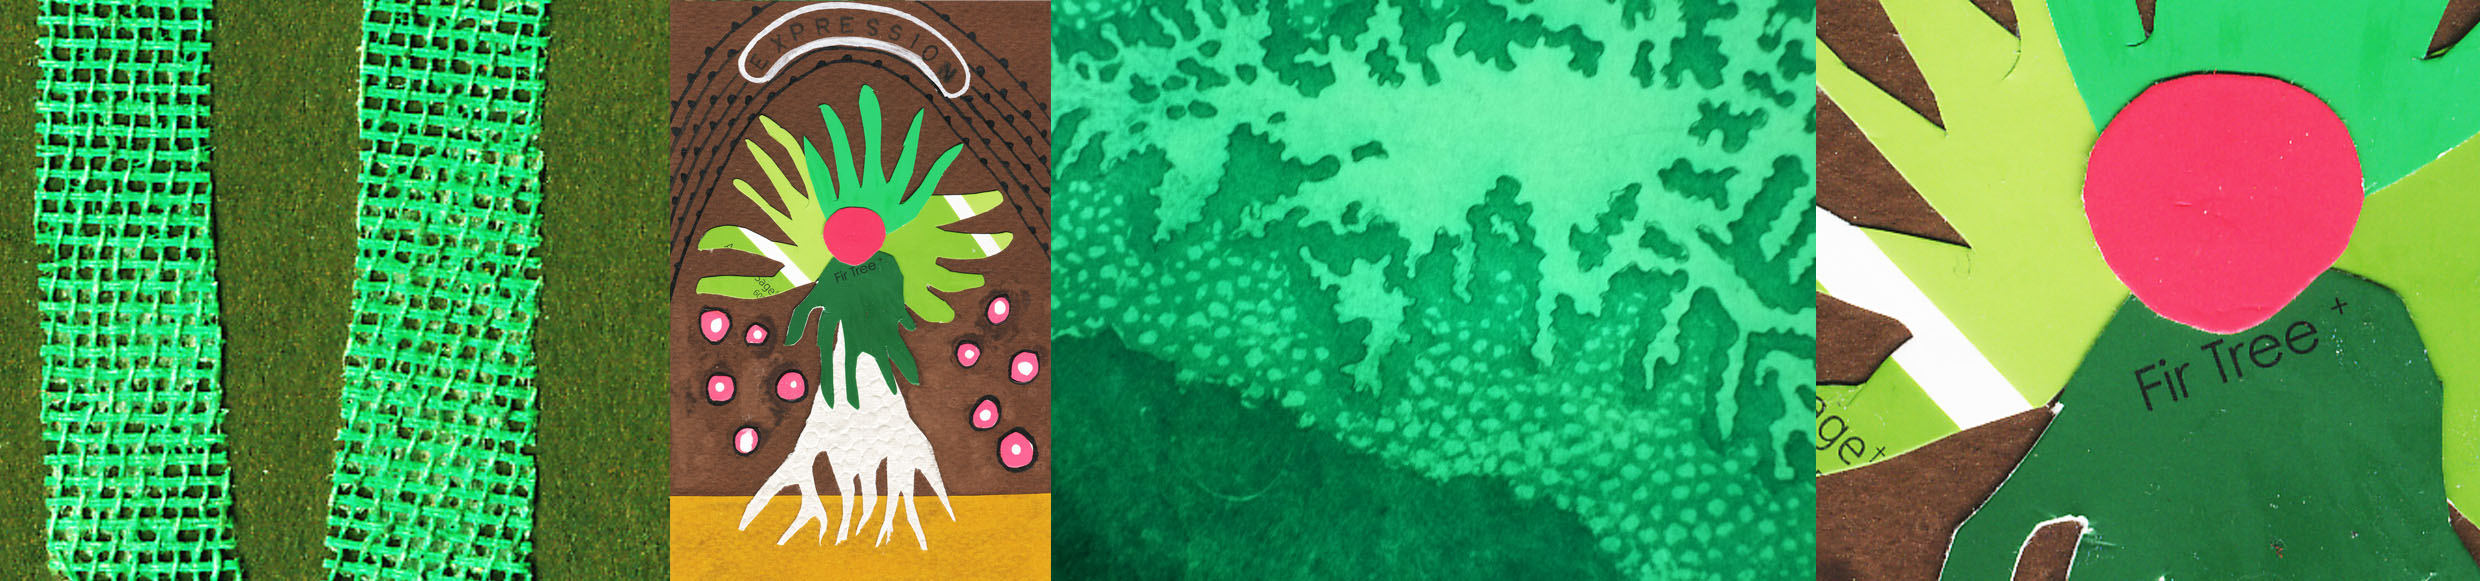 """A strip of different artistic images including: 1. Course green hessian on green background. 2. Collage of a tree like figure made of white, green and pink paper shapes on a brown and yellow background with an arch of black lines and dots above it with the word  """"Expression""""  printed. 3. Detail of green etching print of abstract plant. 4. Detail of the face of the tree like figure collage.© all images by   Natalya Garden-Thompson, 2016"""